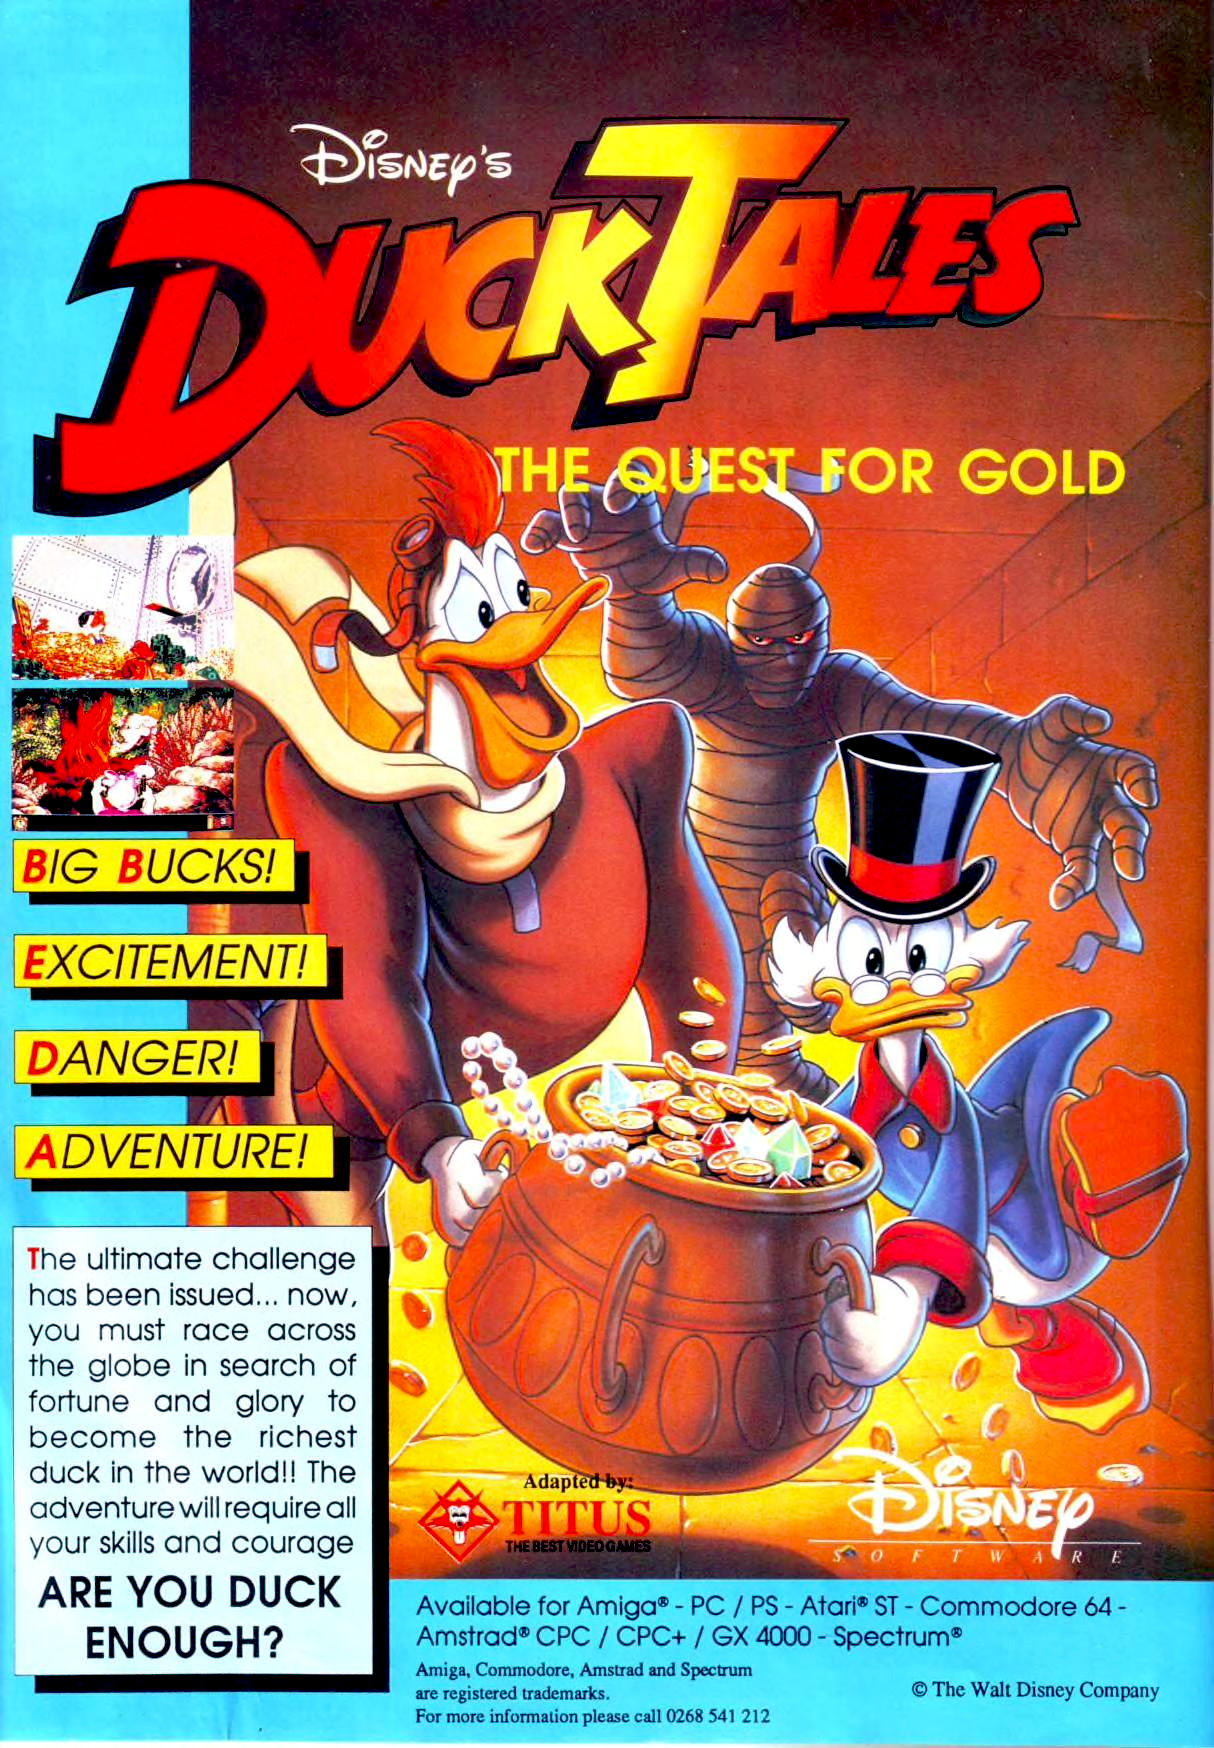 Disney's DuckTales The Quest For Gold is a pulse-pounding action-adventure full of excitement and challenge. In six different games, you'll search for the world's rarest treasures in a variety of exotic places. Begin your quest by selecting a destination, then it's off to adventure! Experience the thrills of navigating through lightning storms, dodging attacking aliens or plummeting helplessly from cliffs!